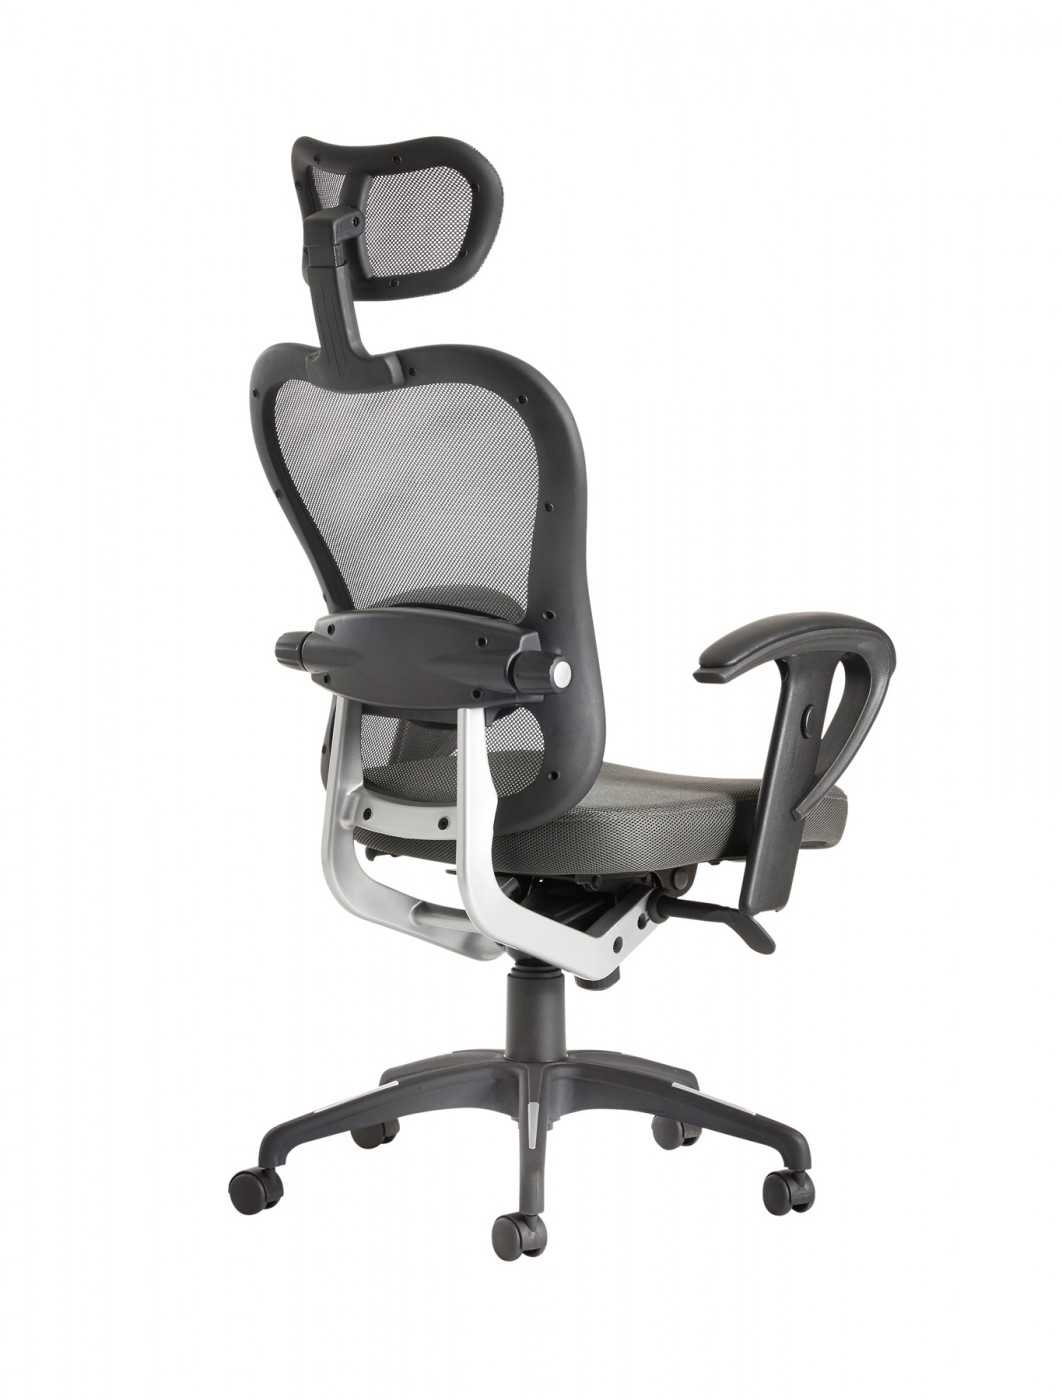 ergonomic chair posture rolling office chairs dams betis high mesh back bet300k2 g 121